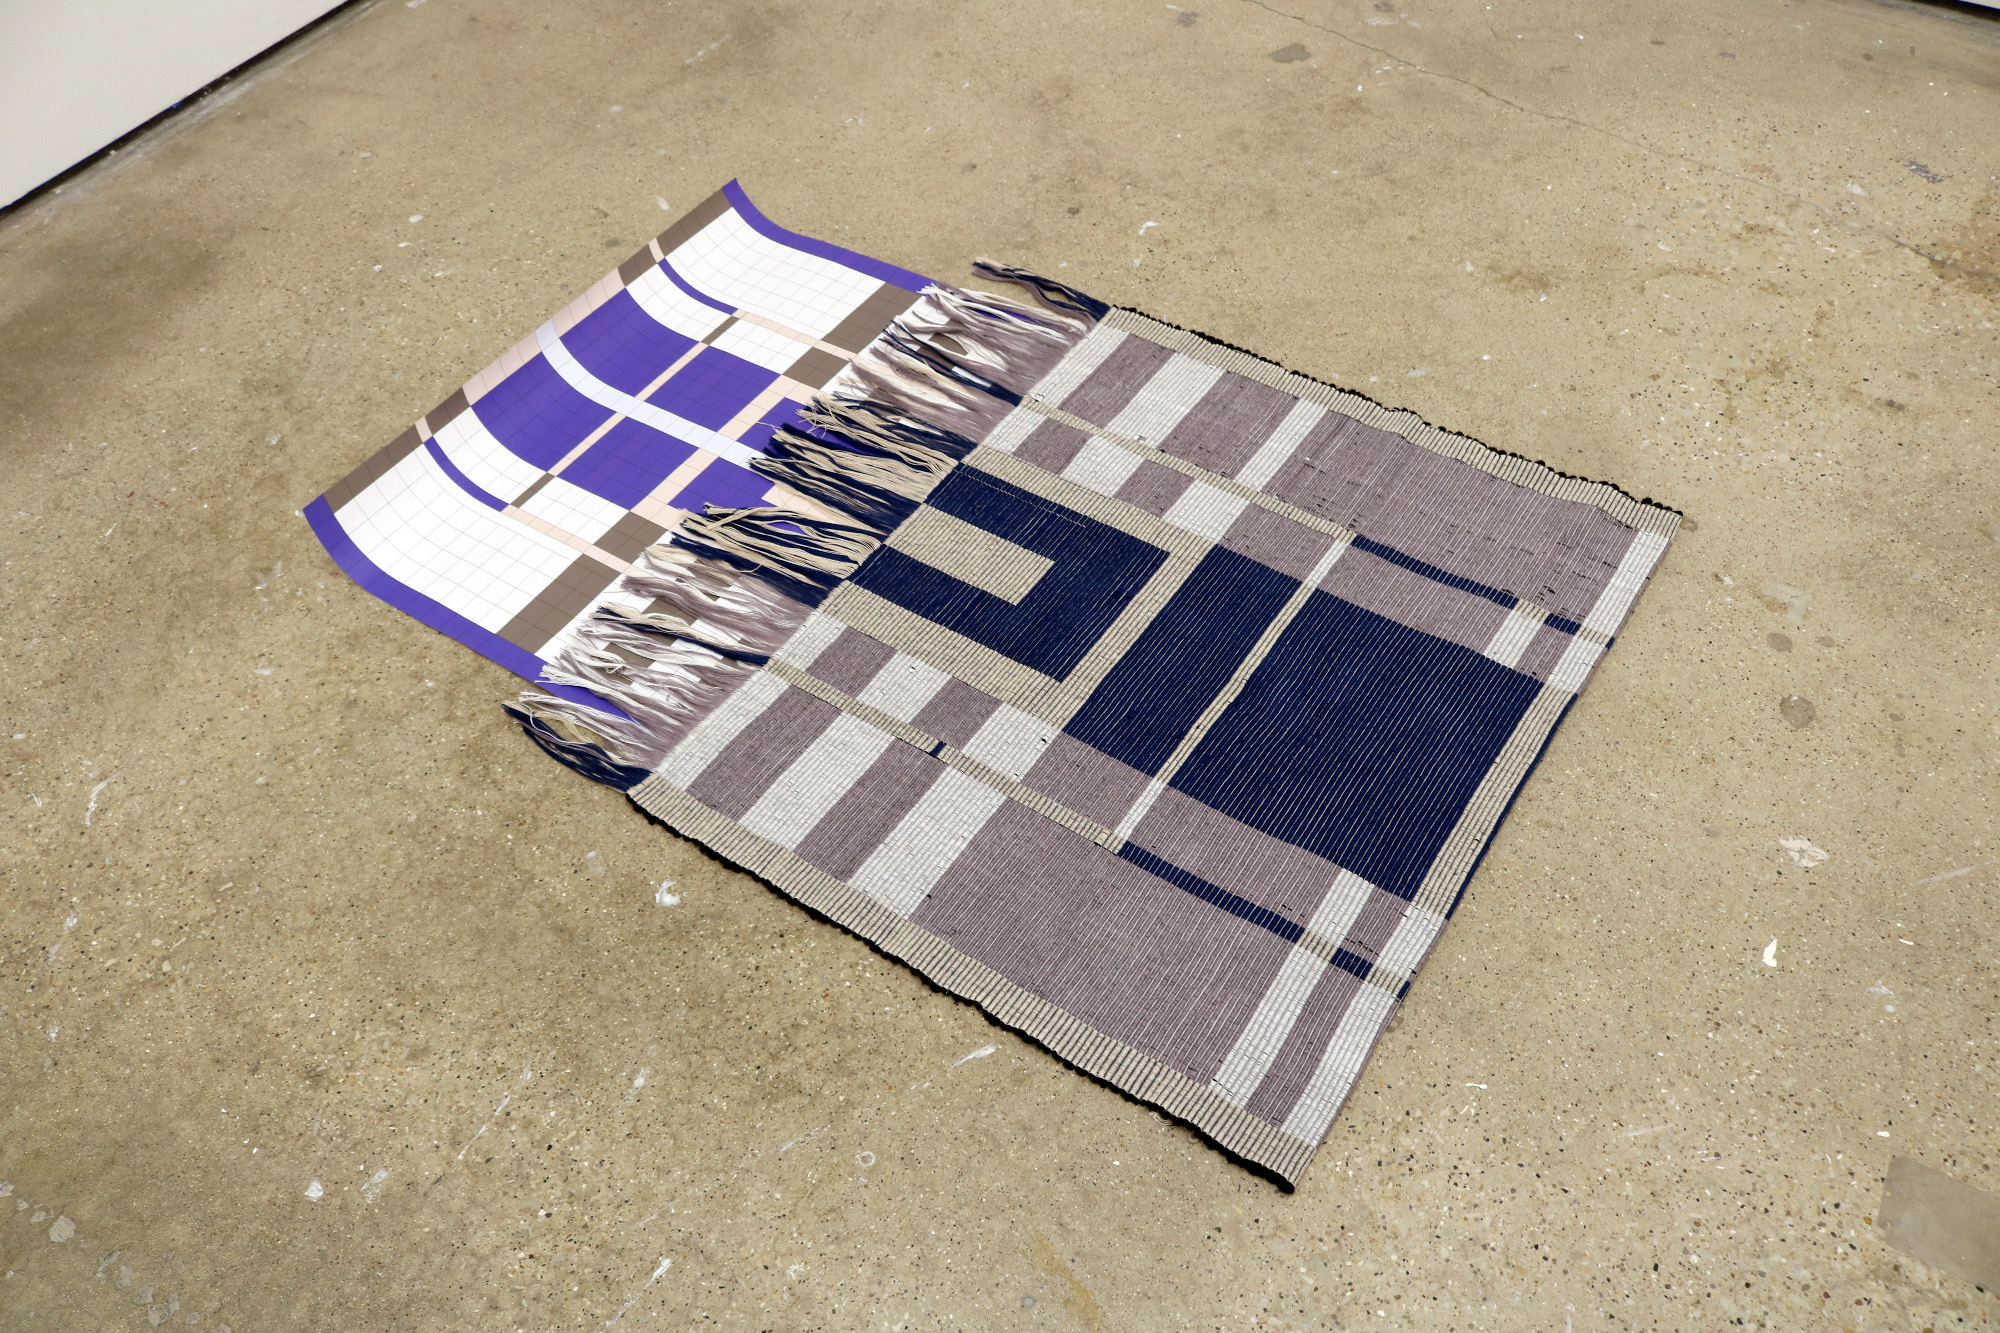 Plan of a Rug Making a Rug (2018)  hand woven rug with cotton and rope, paper